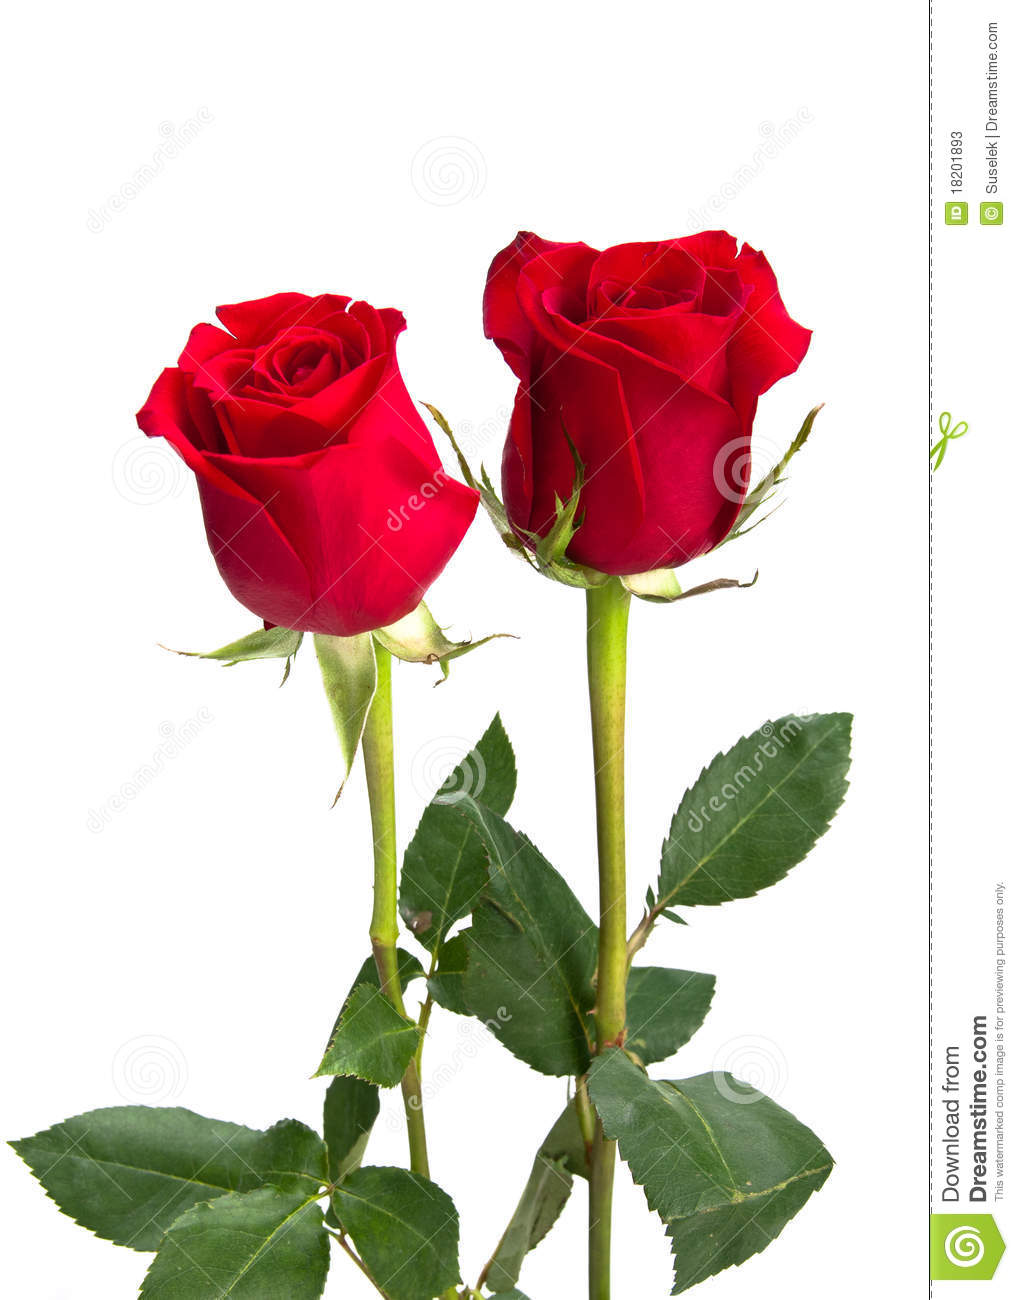 ... Red Roses On Isolating Background Stock Photos - Image: 18201893